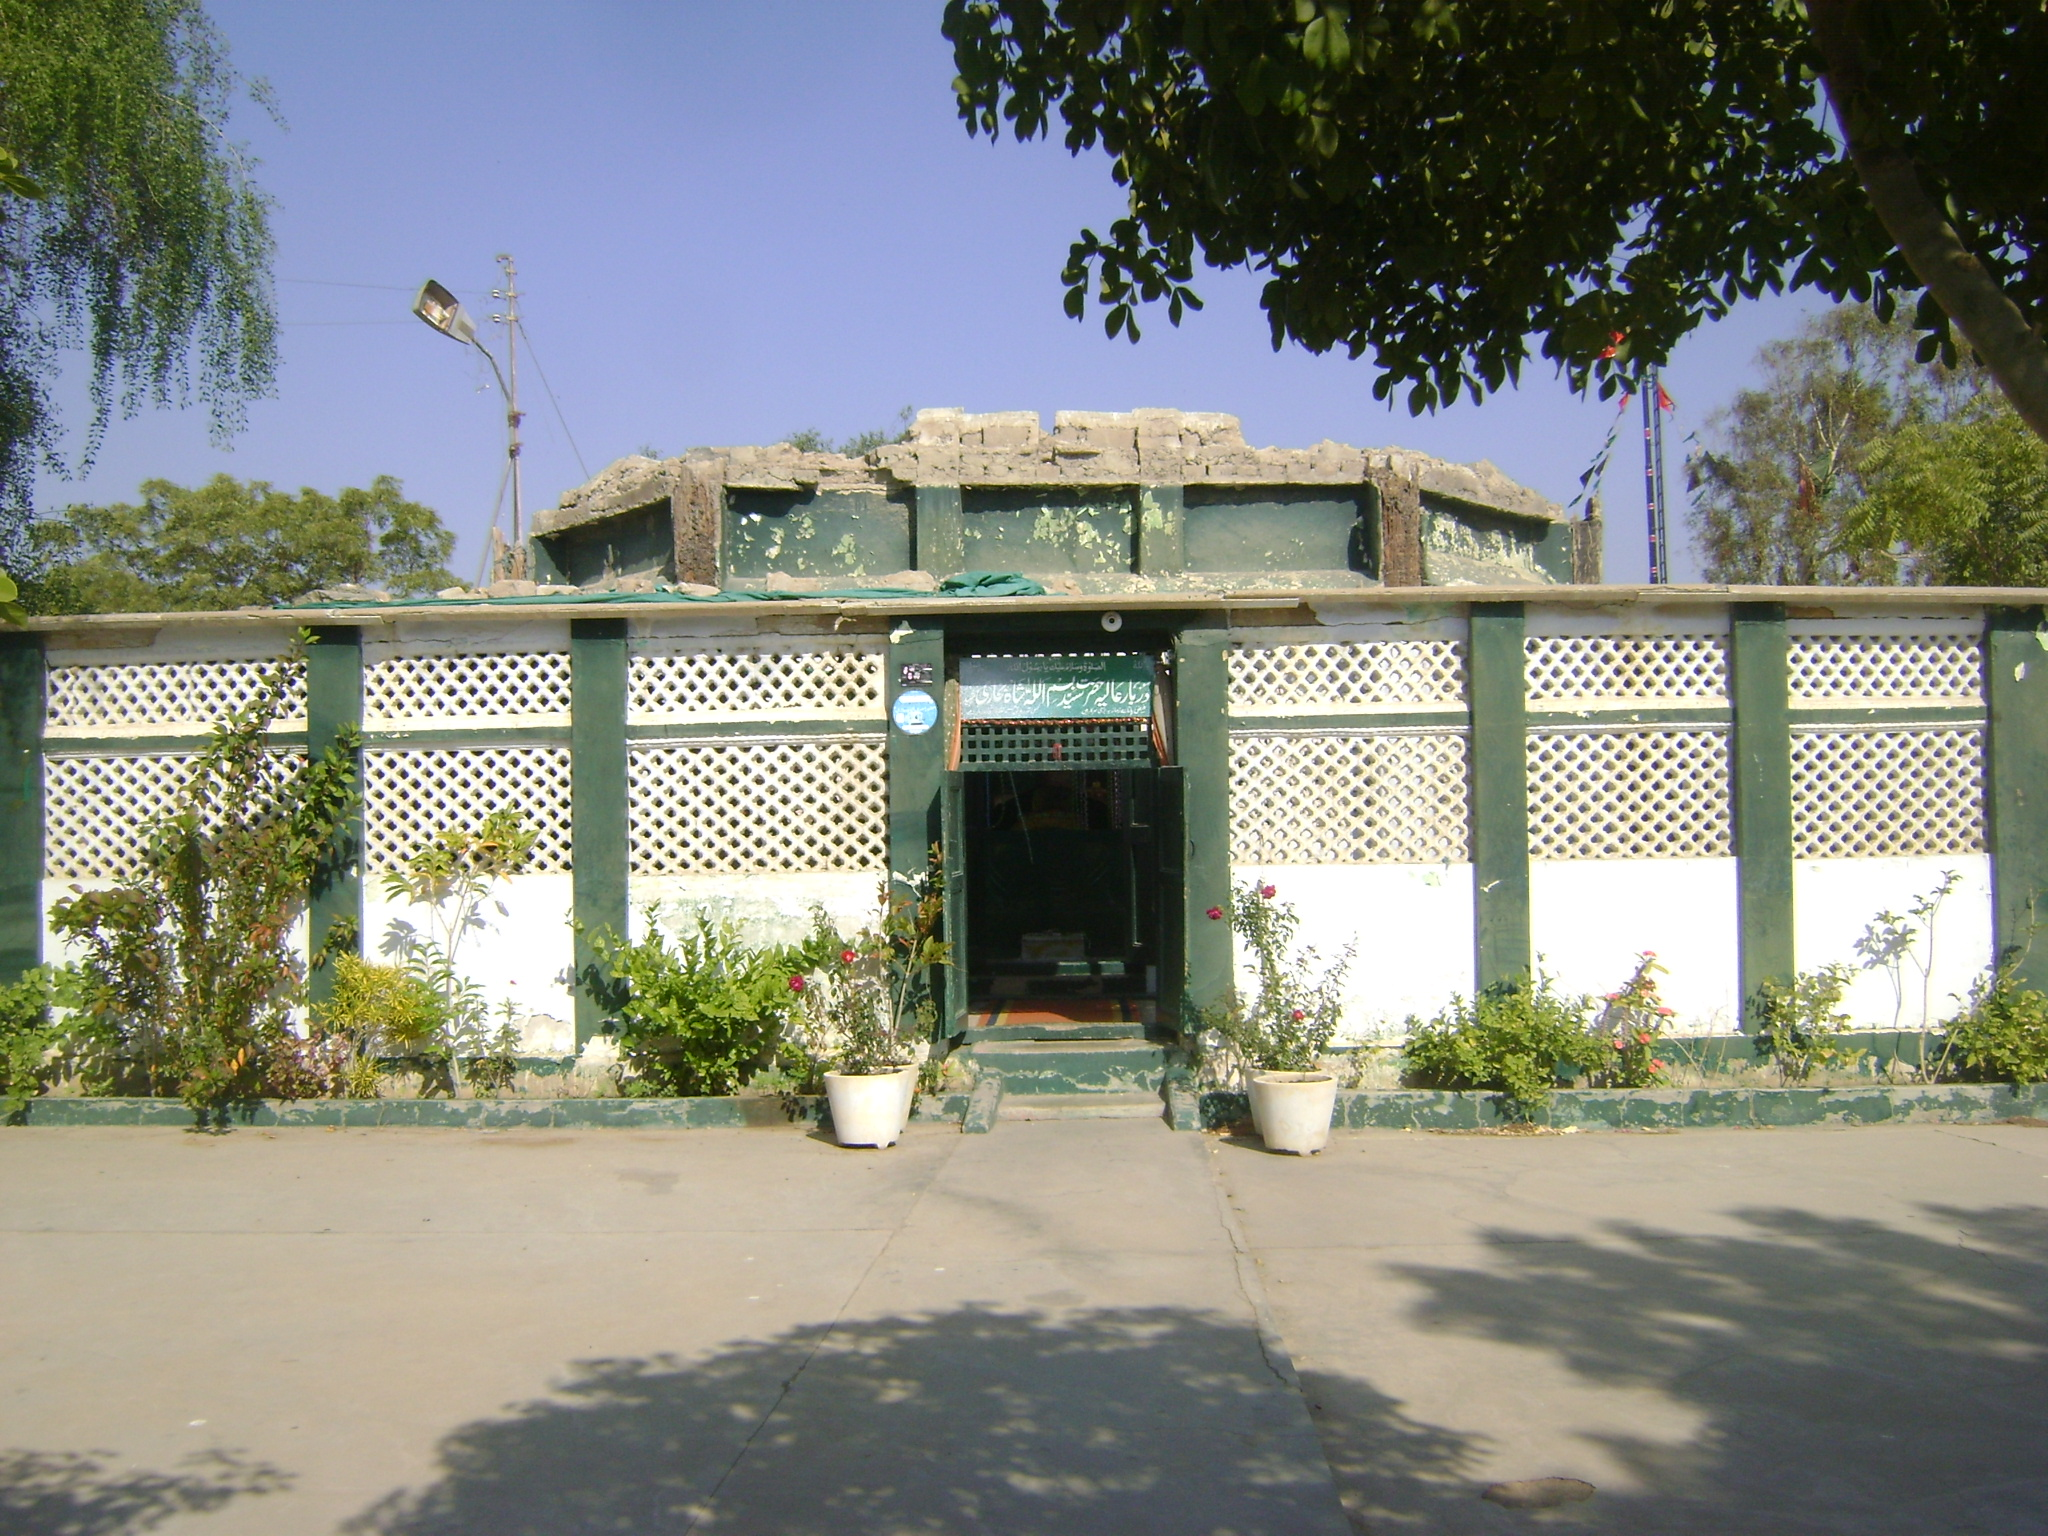 Final resting place of martyred Pir Pagaro remains a mystery- Shrine of Pir Bismillah shah - Sindh Courier-4